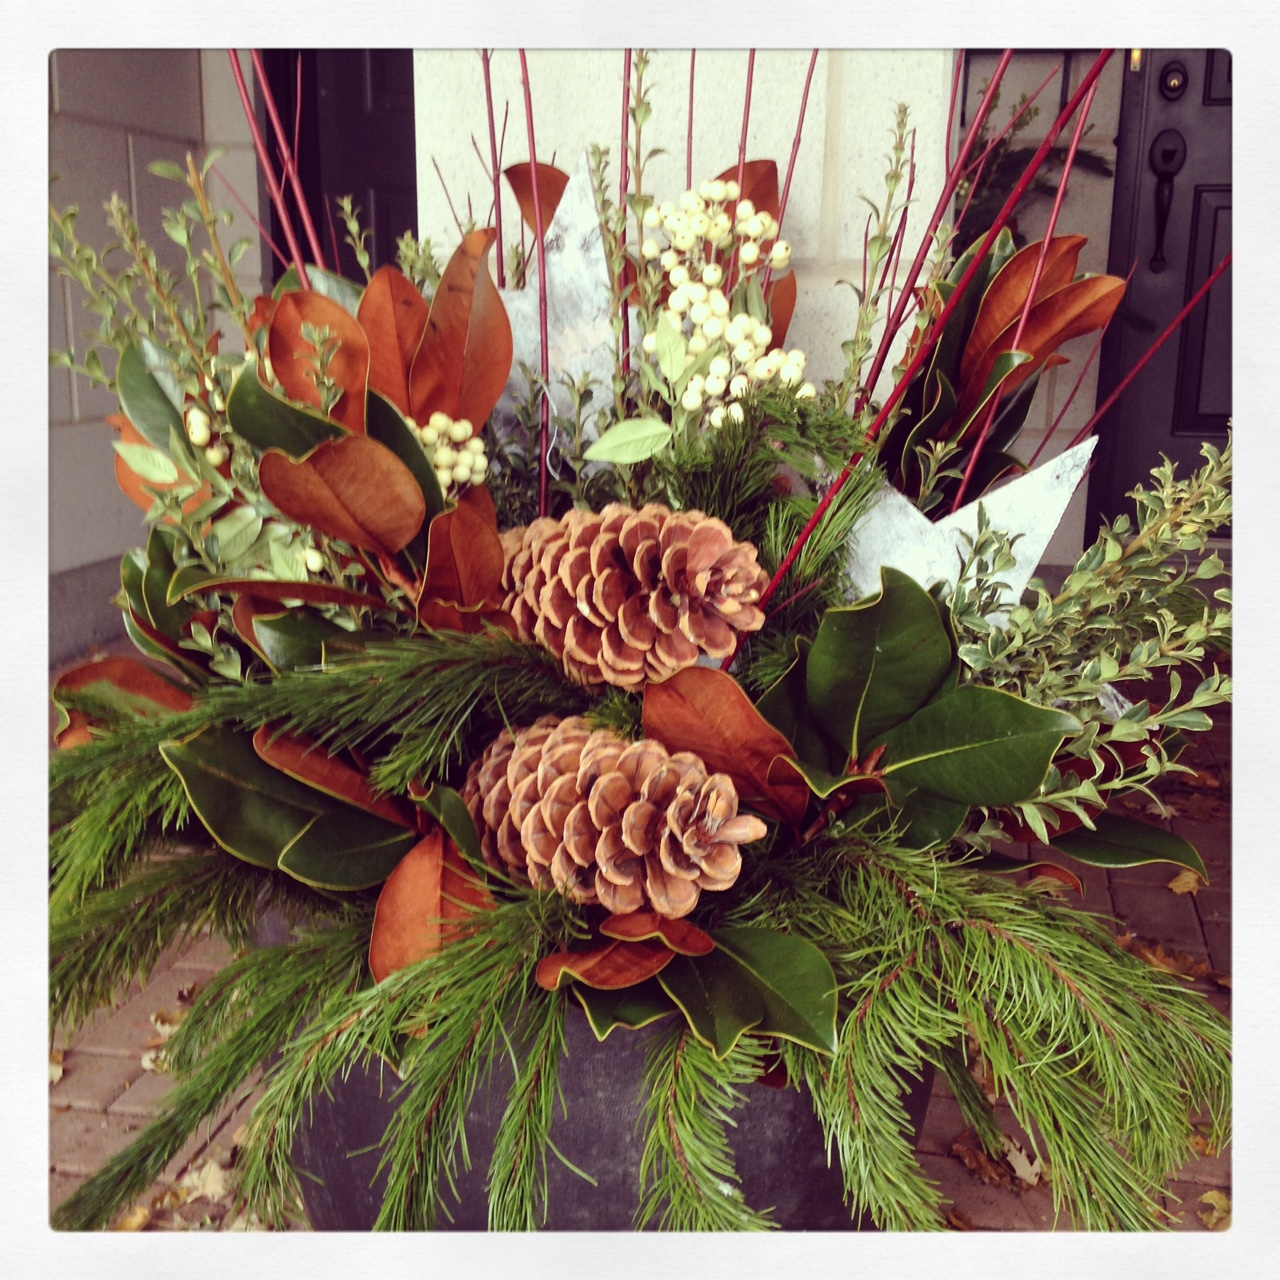 Winter evergreen urn arrangement